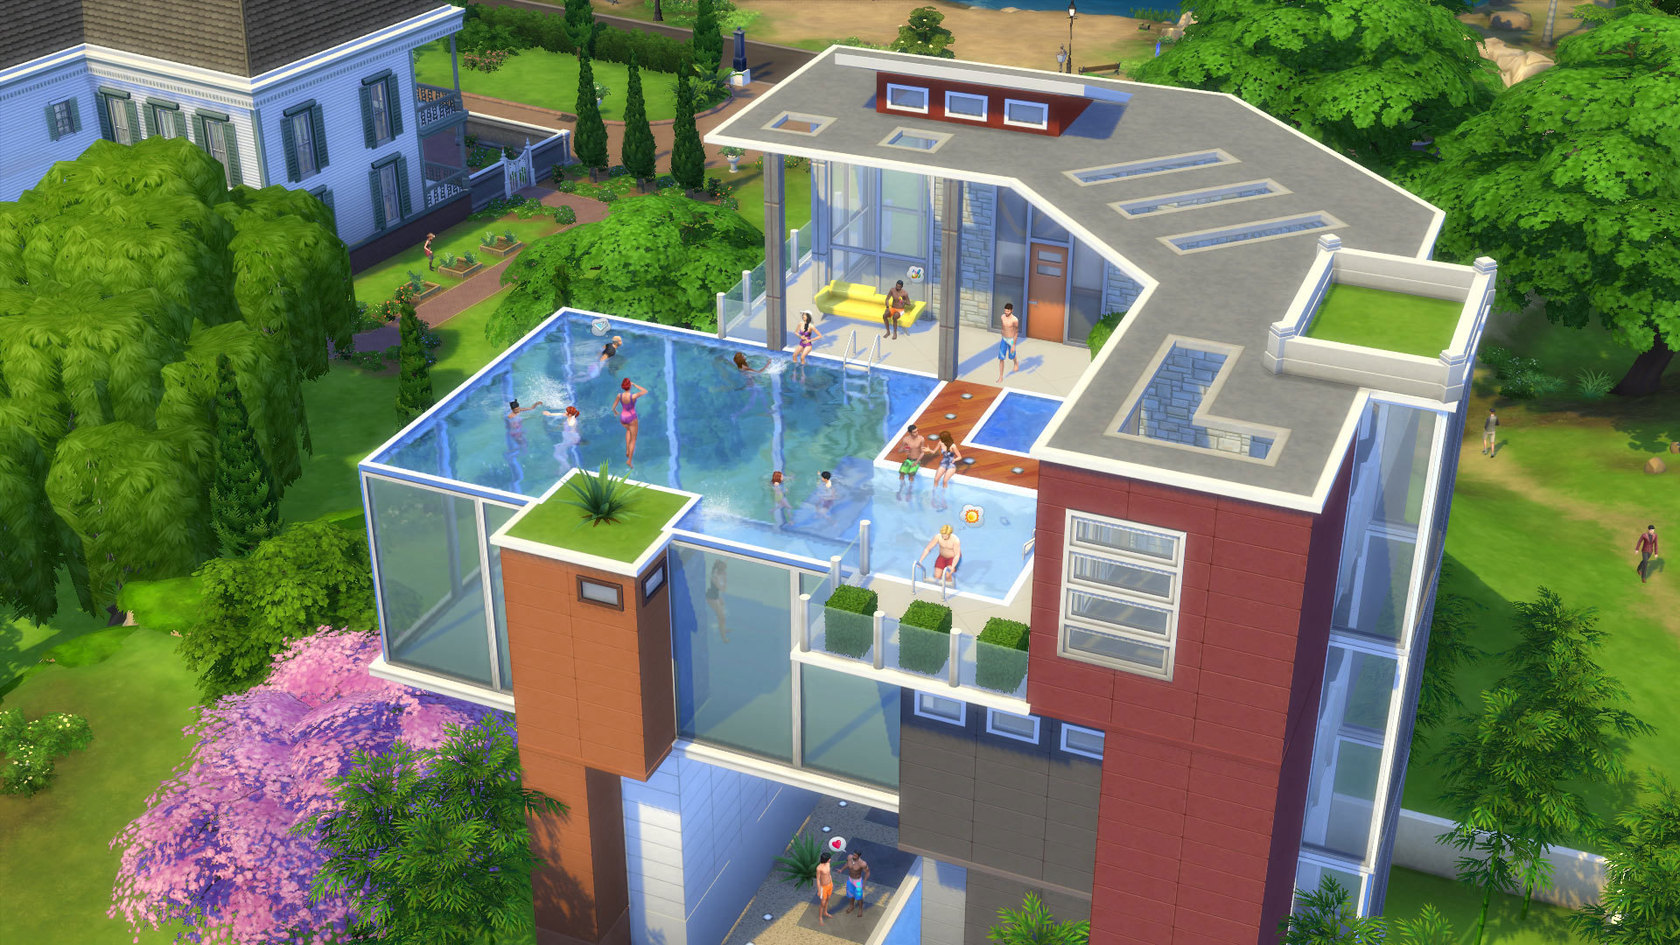 The sims 4 for Construire une maison sims 3 xbox 360